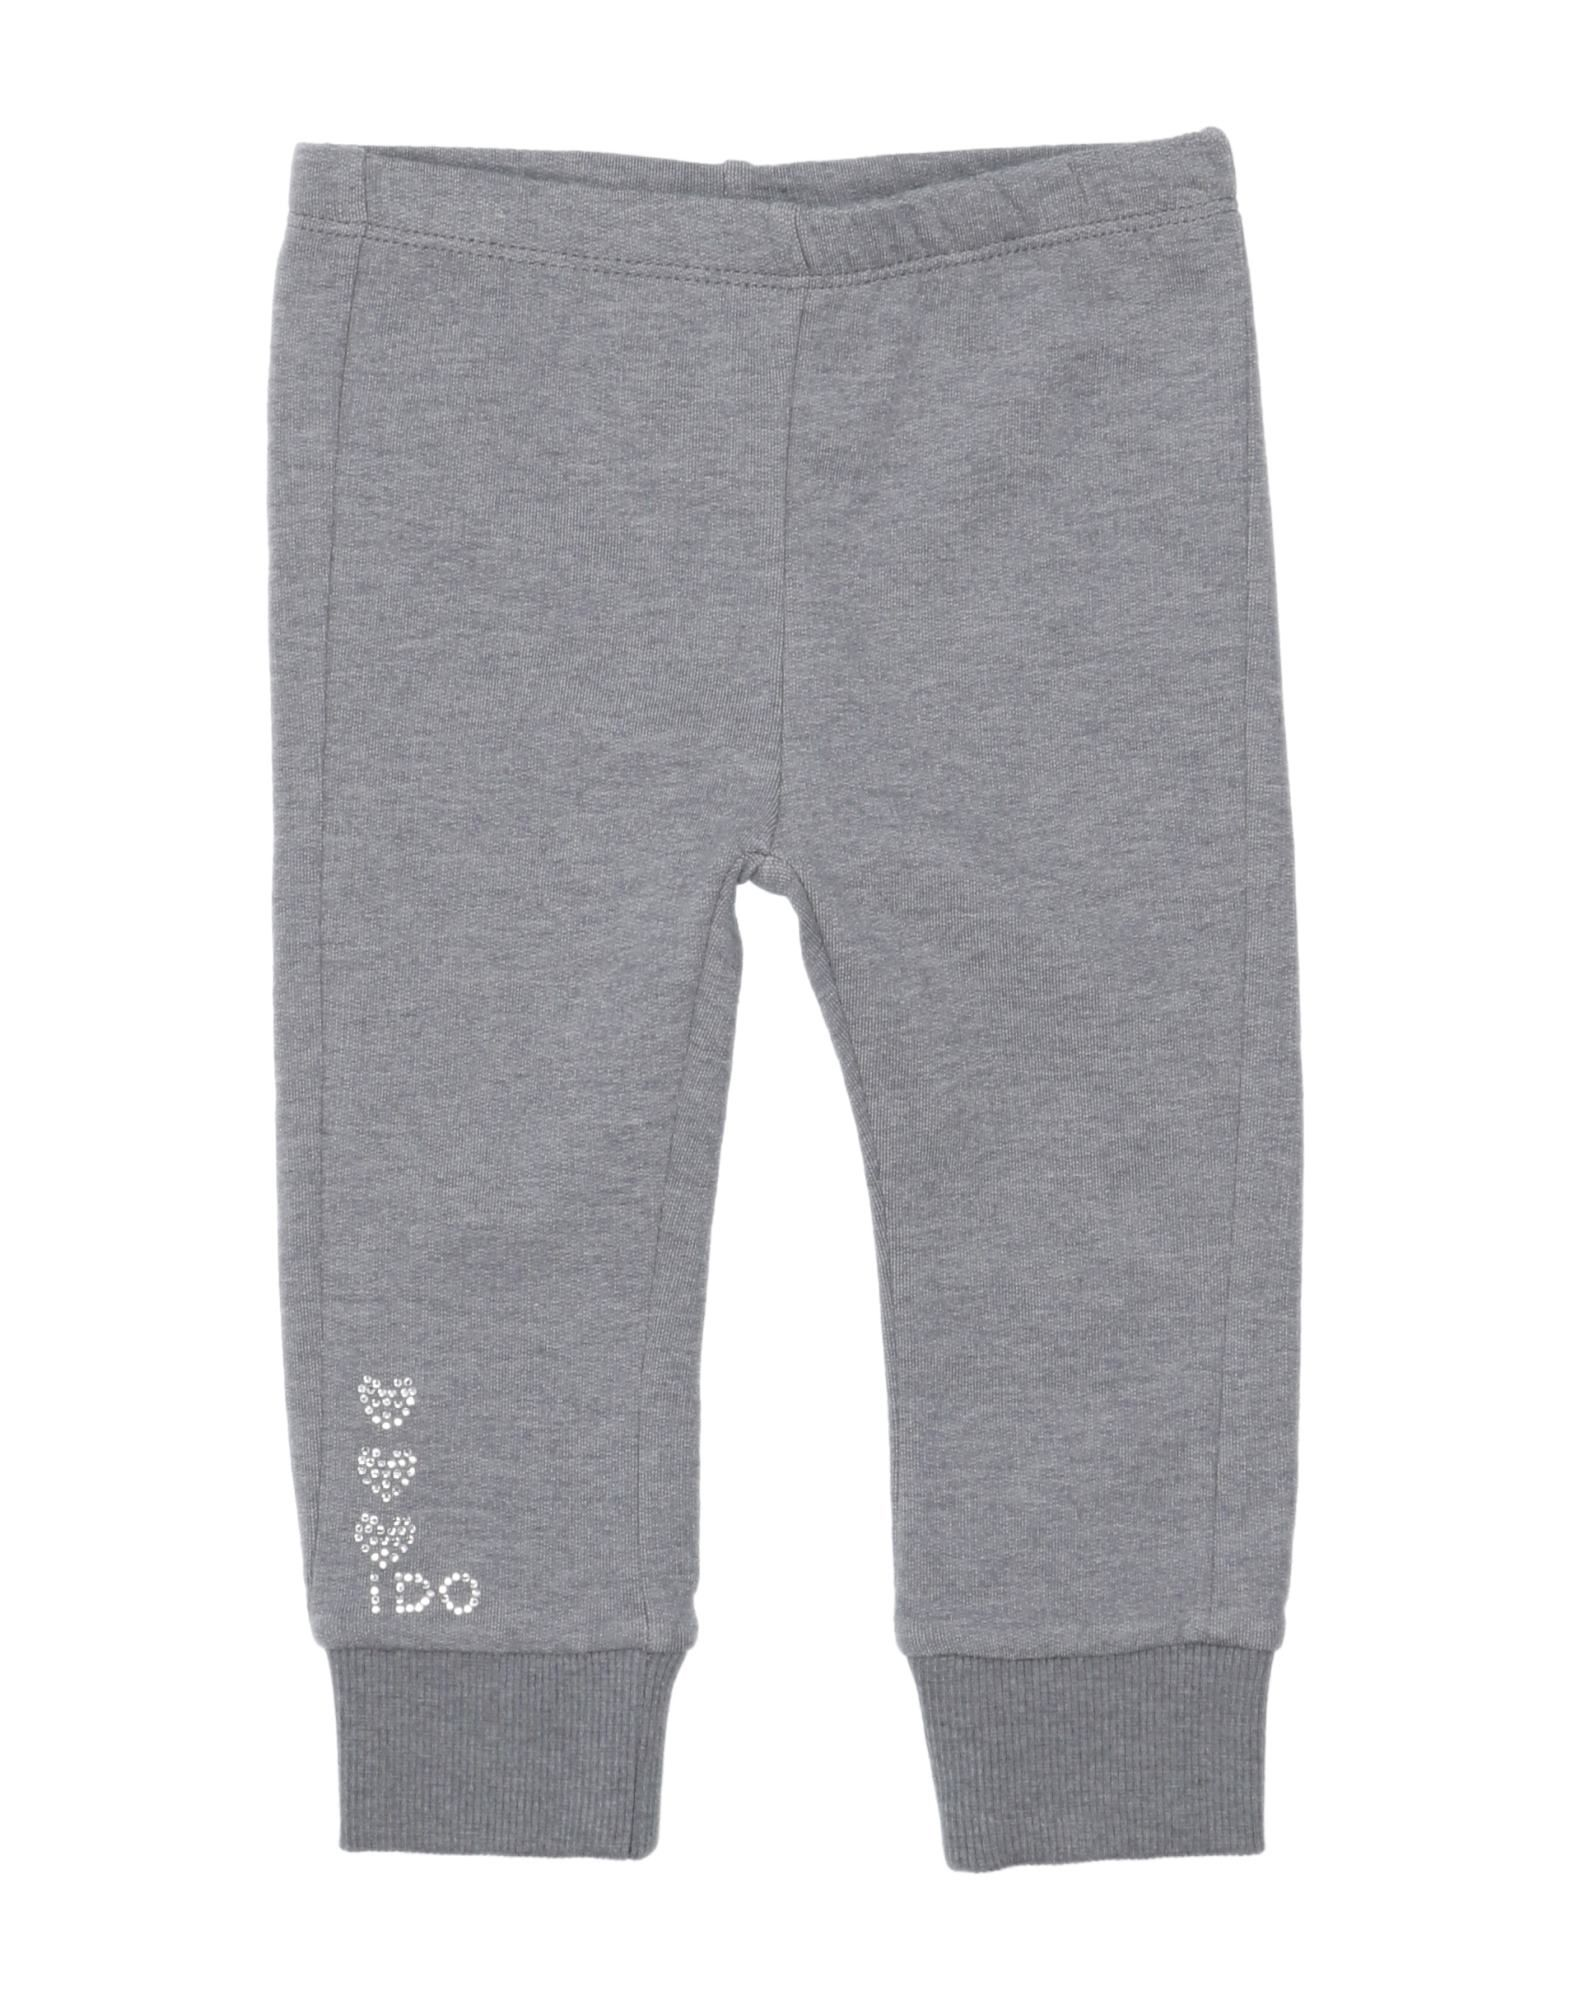 Ido By Miniconf Kids' Casual Pants In Gray